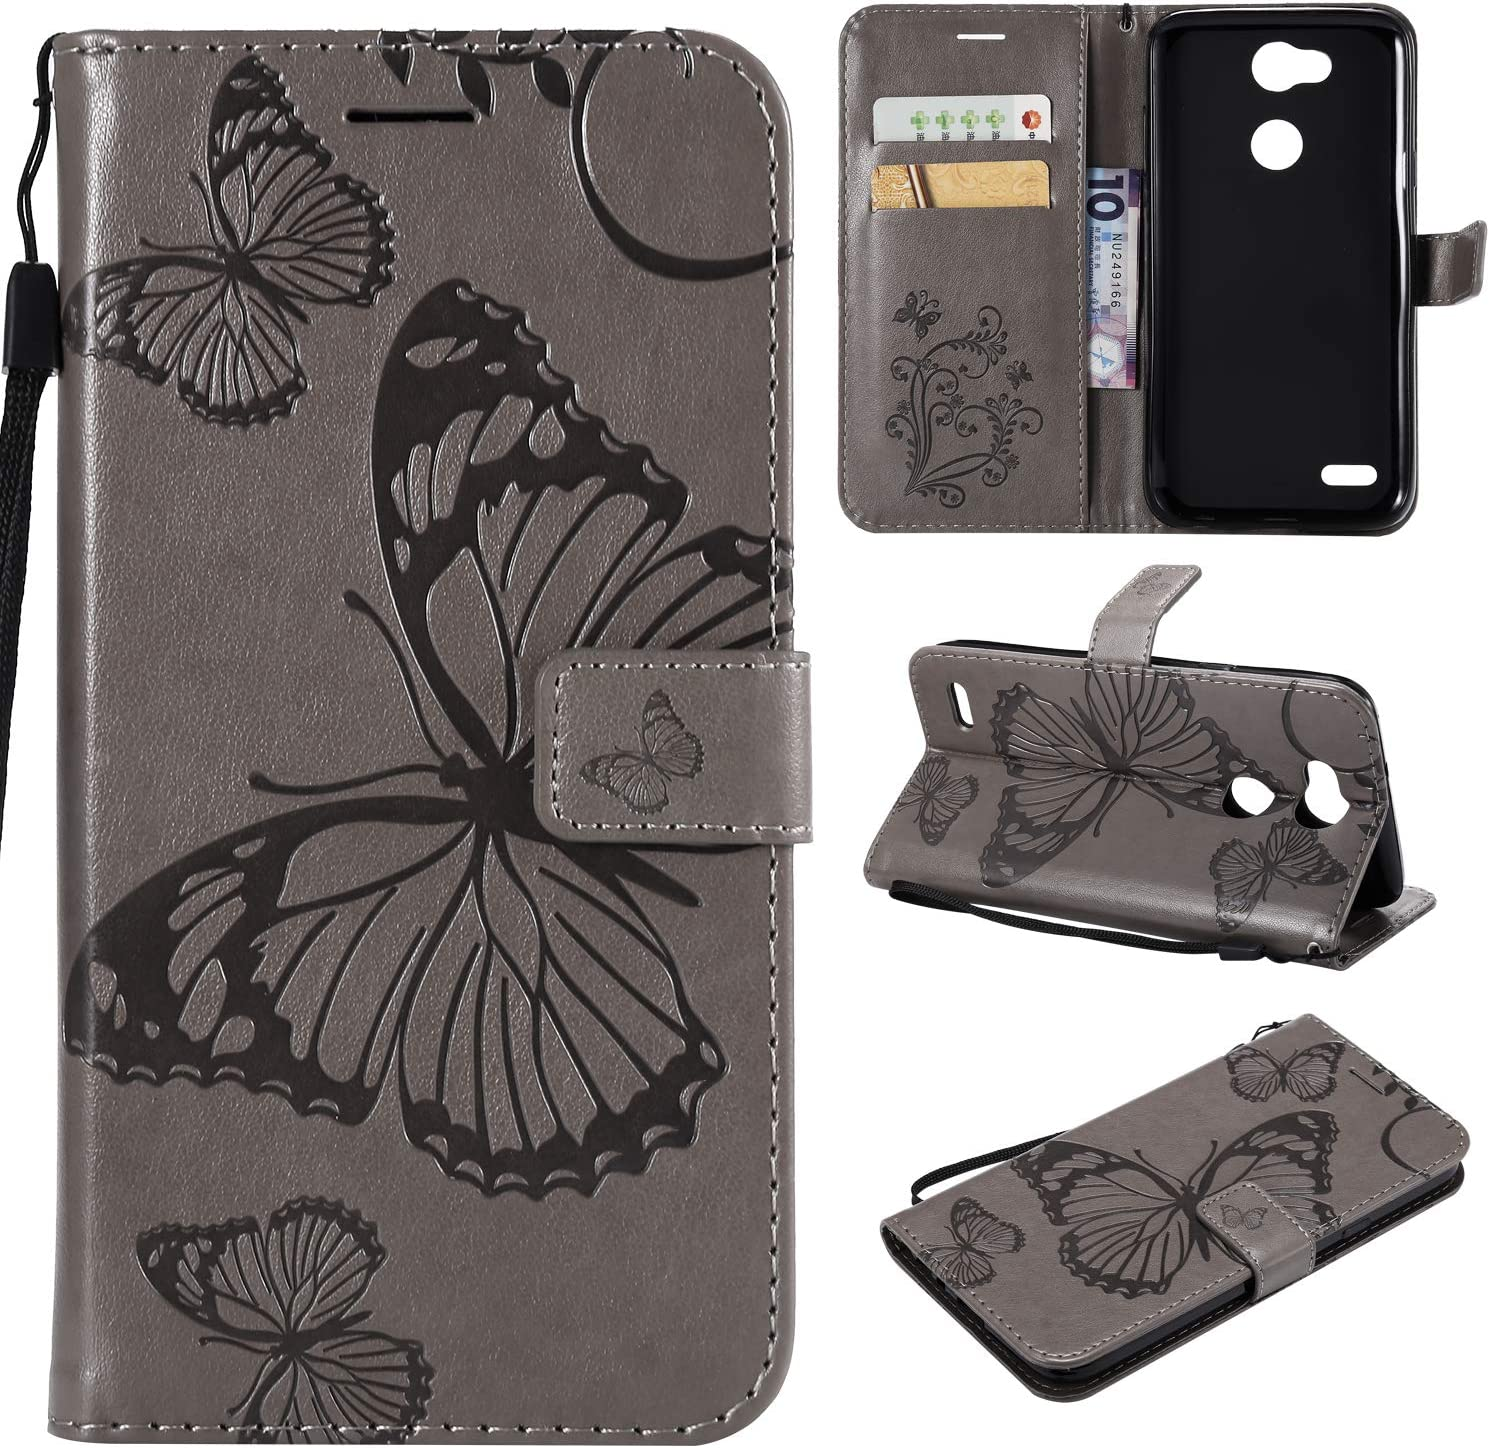 LG X Power 3 Phone Case,LG X Power 3 Wallet Case,LG X Power 3 Case with Card Slot Holder Premium Leather Folio Flip PU Protective Case Cover for LG X Power 3 with Kickstand,Cute Butterfly Rose Gold